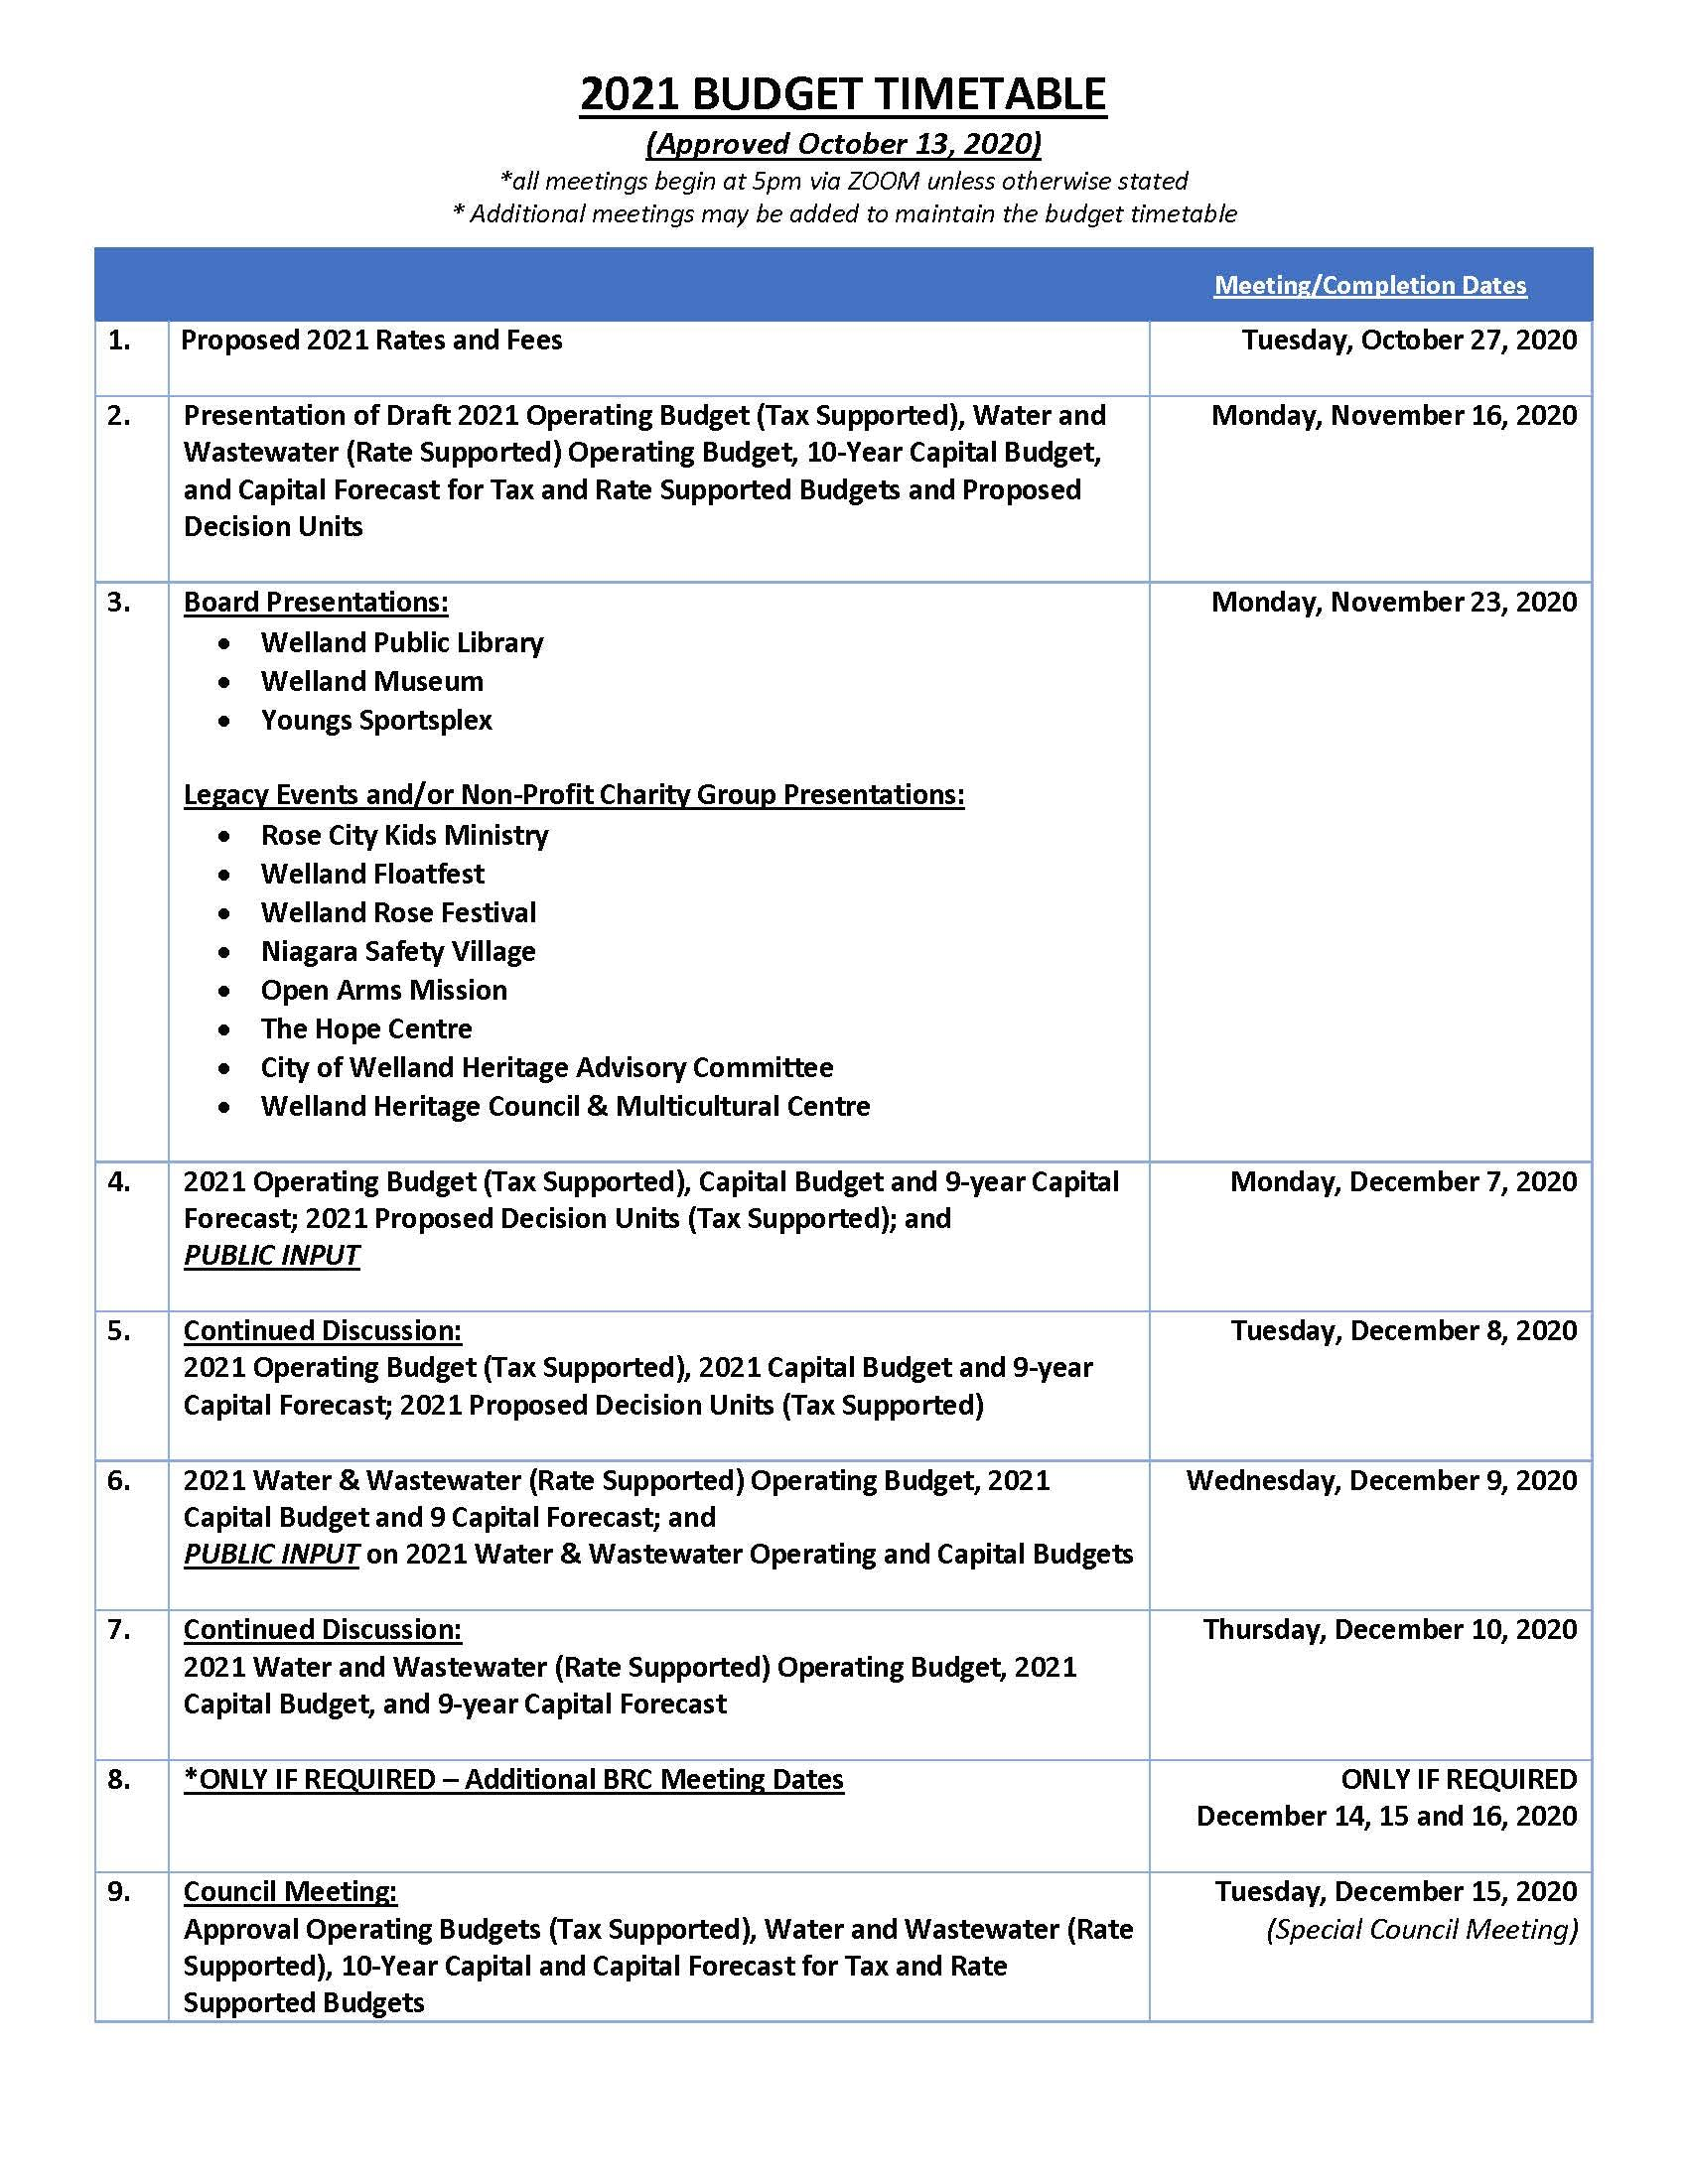 BUDGET TIMETABLE - approved Oct 13 2020.jpg